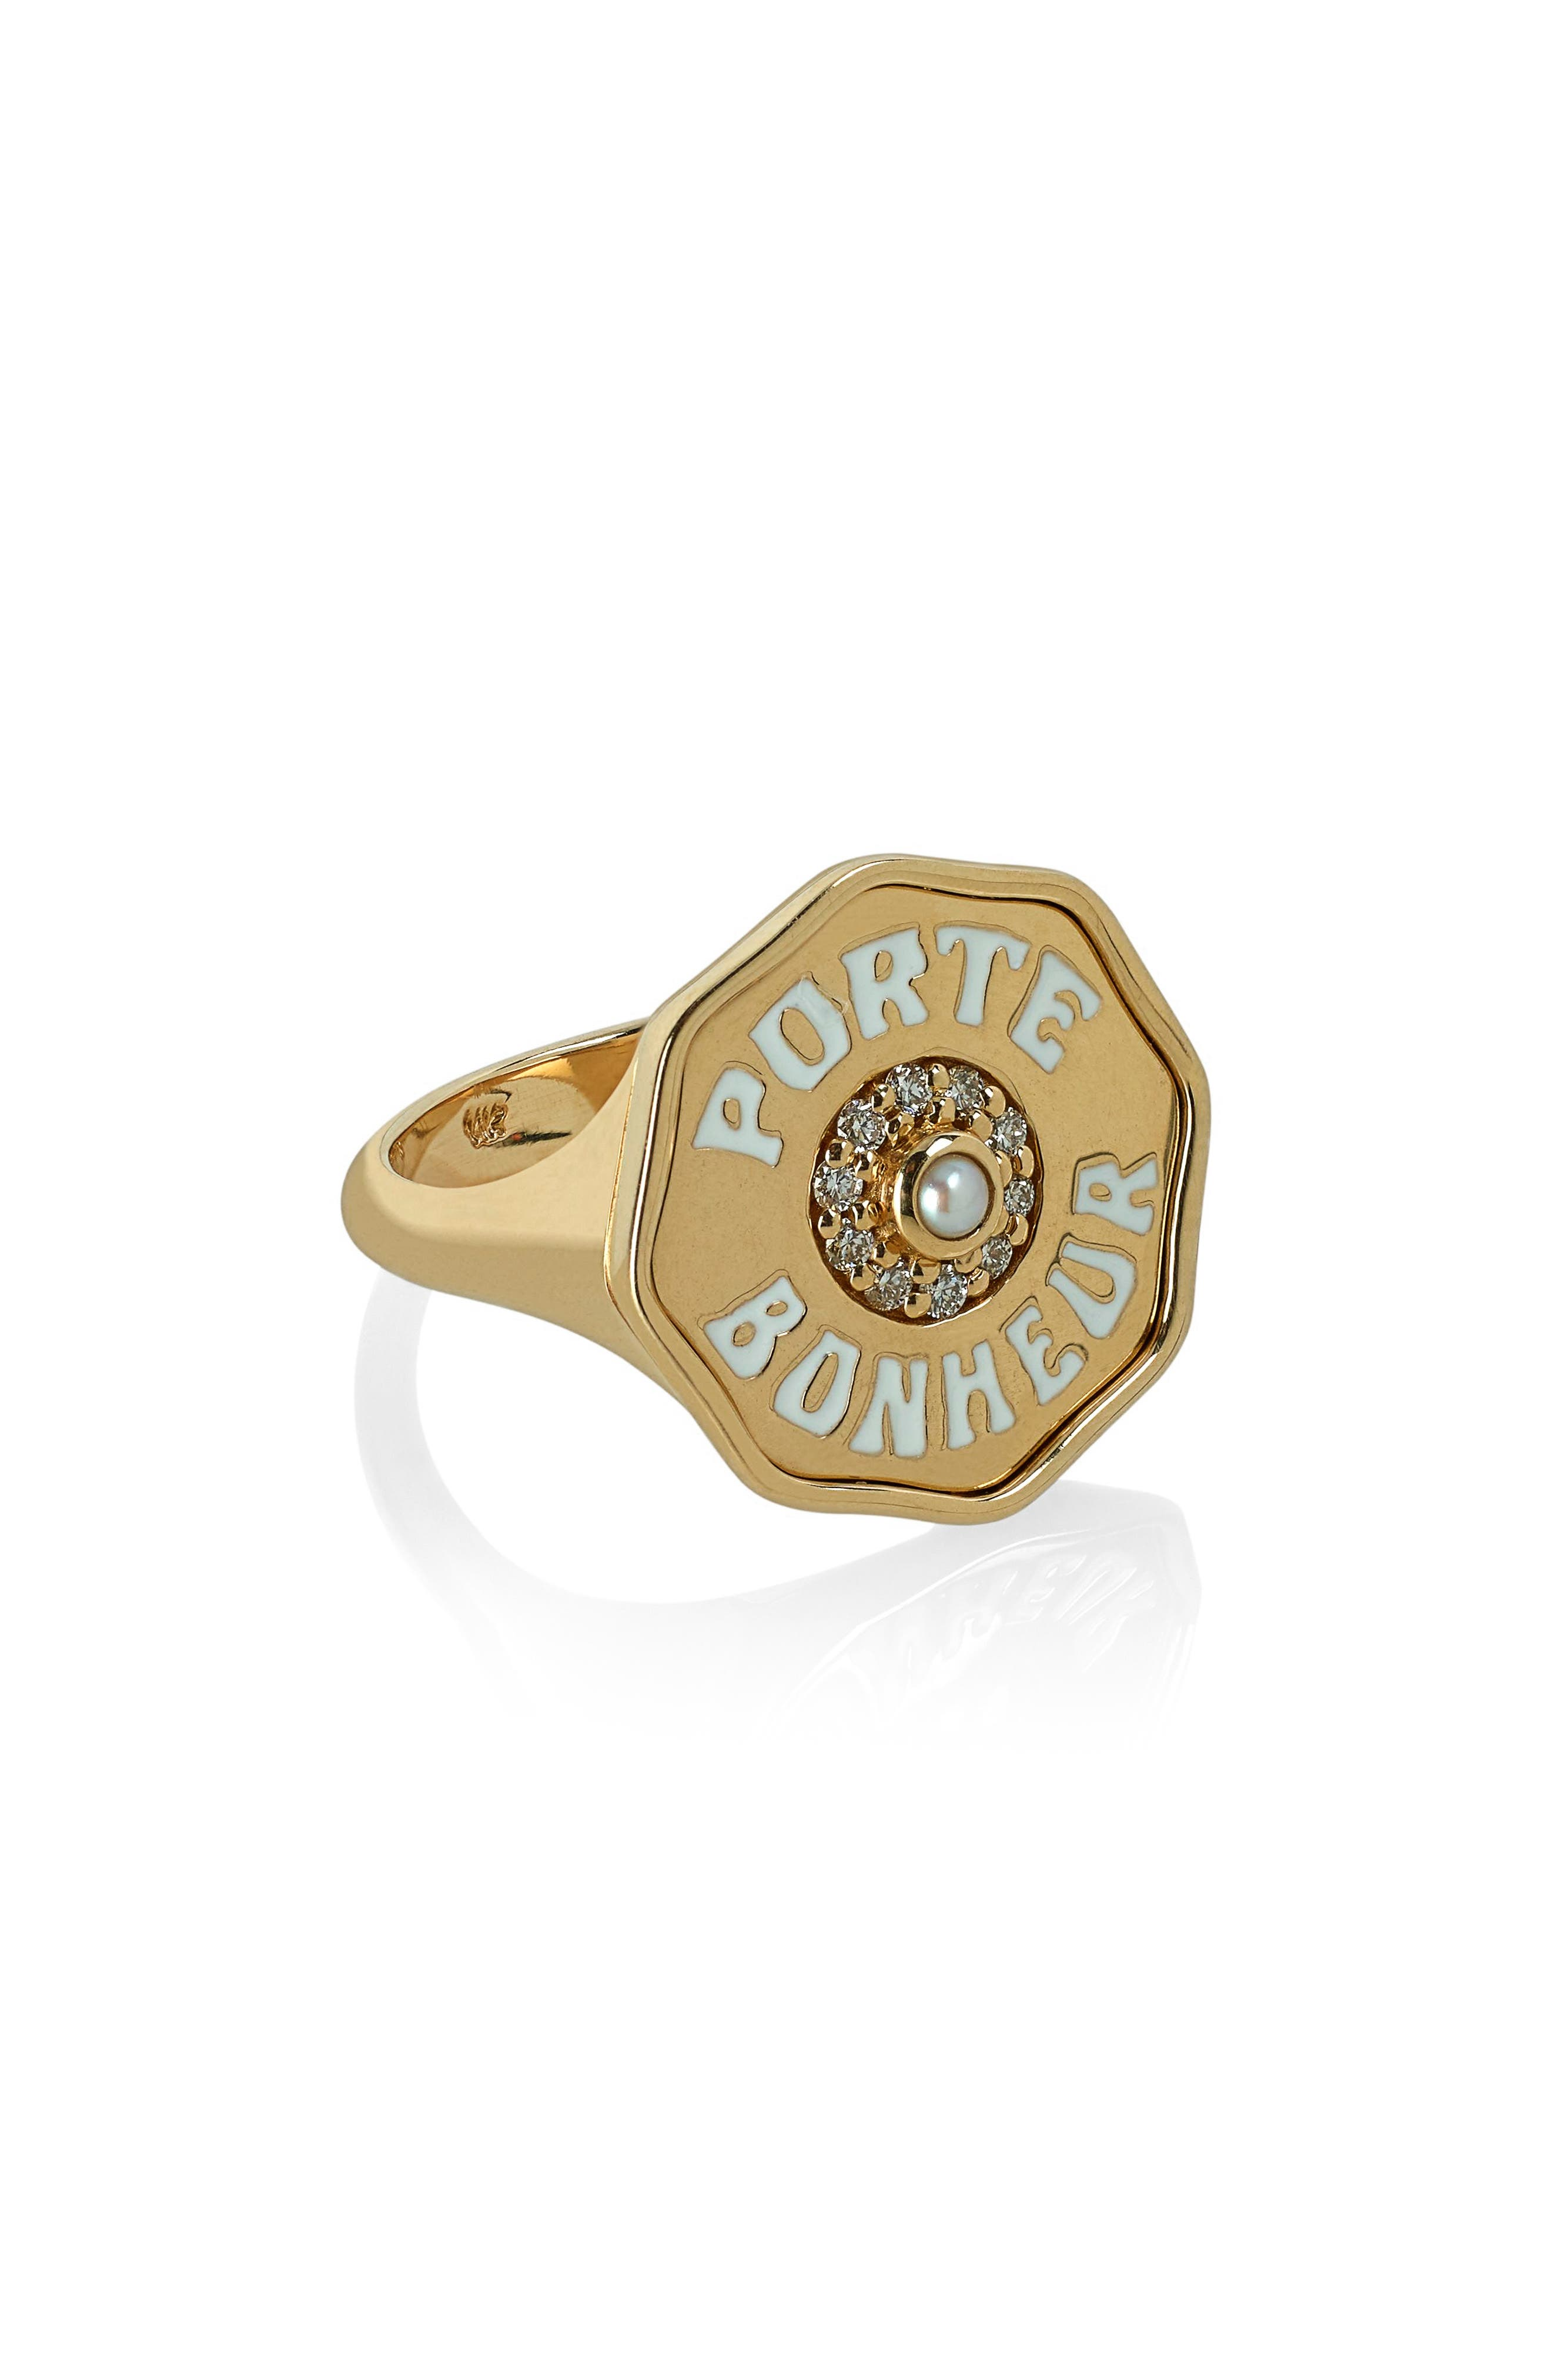 Porte Bonhuer Coin Ring,                             Main thumbnail 1, color,                             Yellow Gold